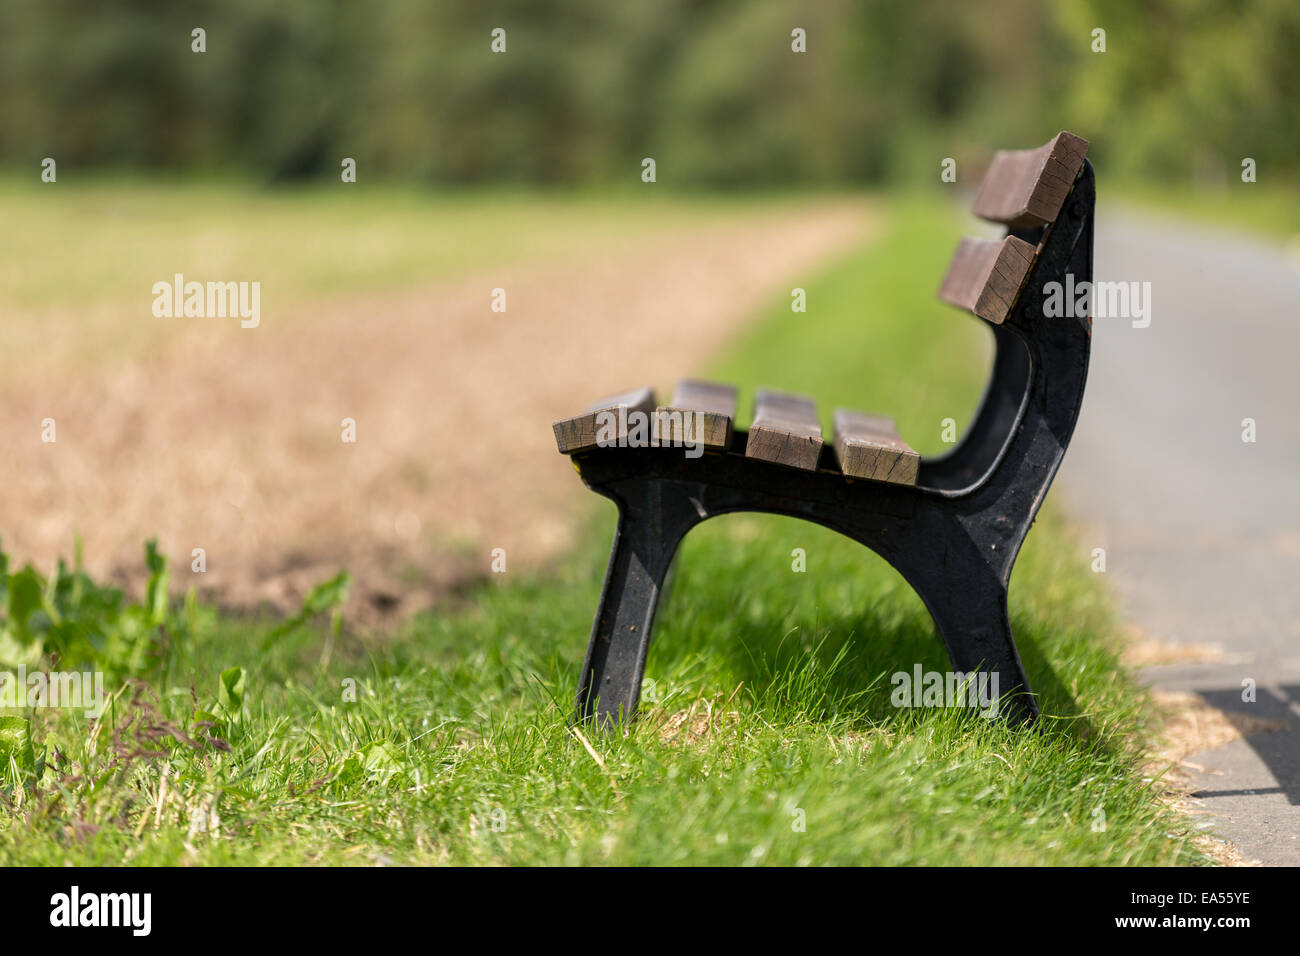 Lonely bench in nature - Stock Image